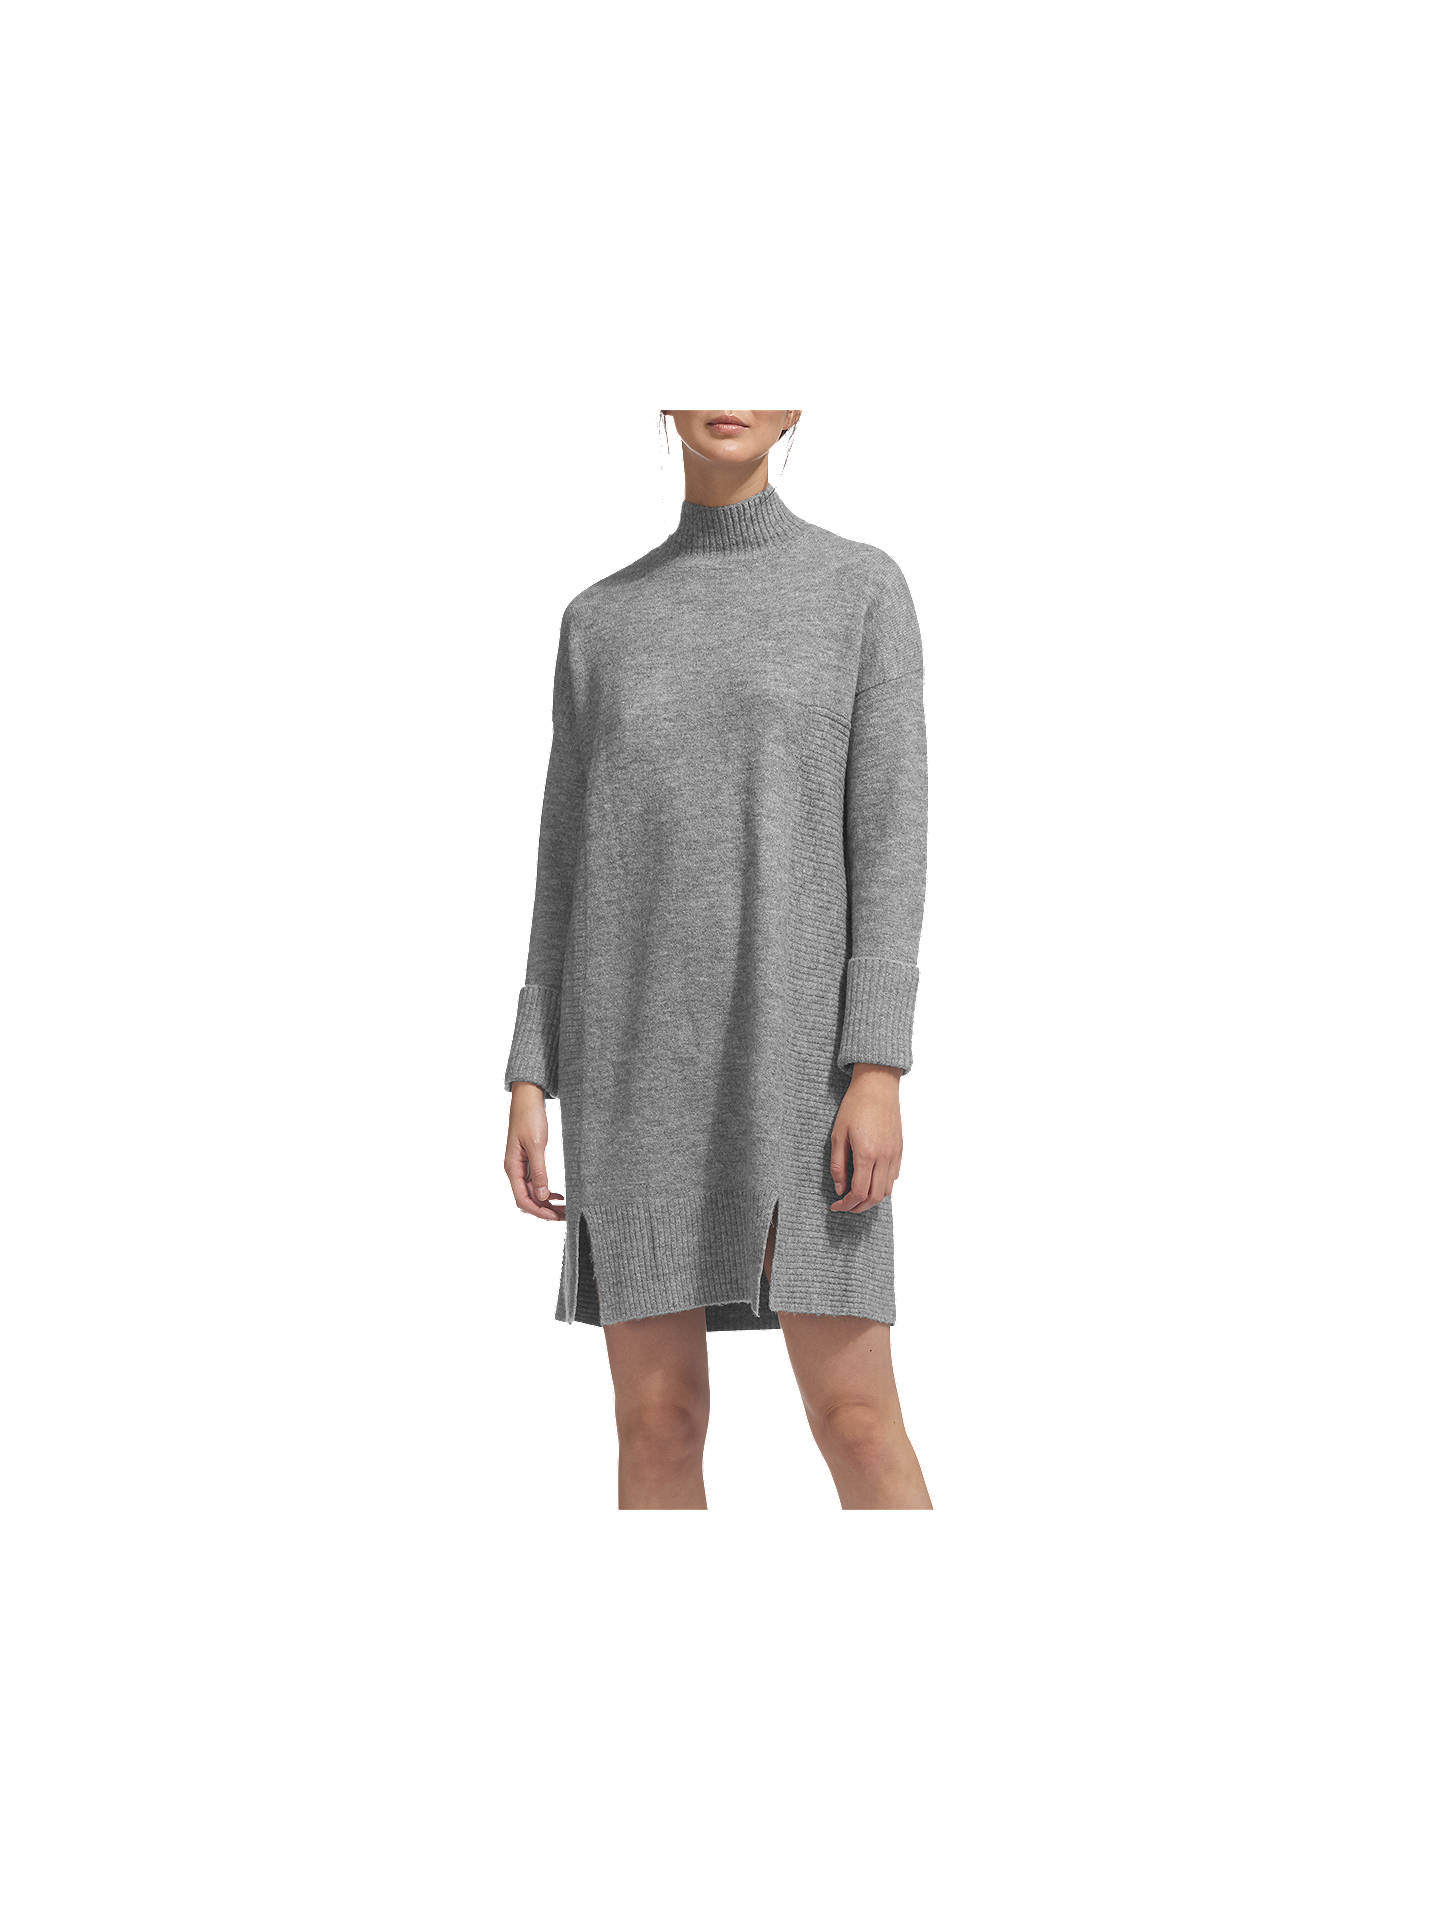 c6c69fa6d37 Buy Whistles Funnel Neck Casual Knit Dress